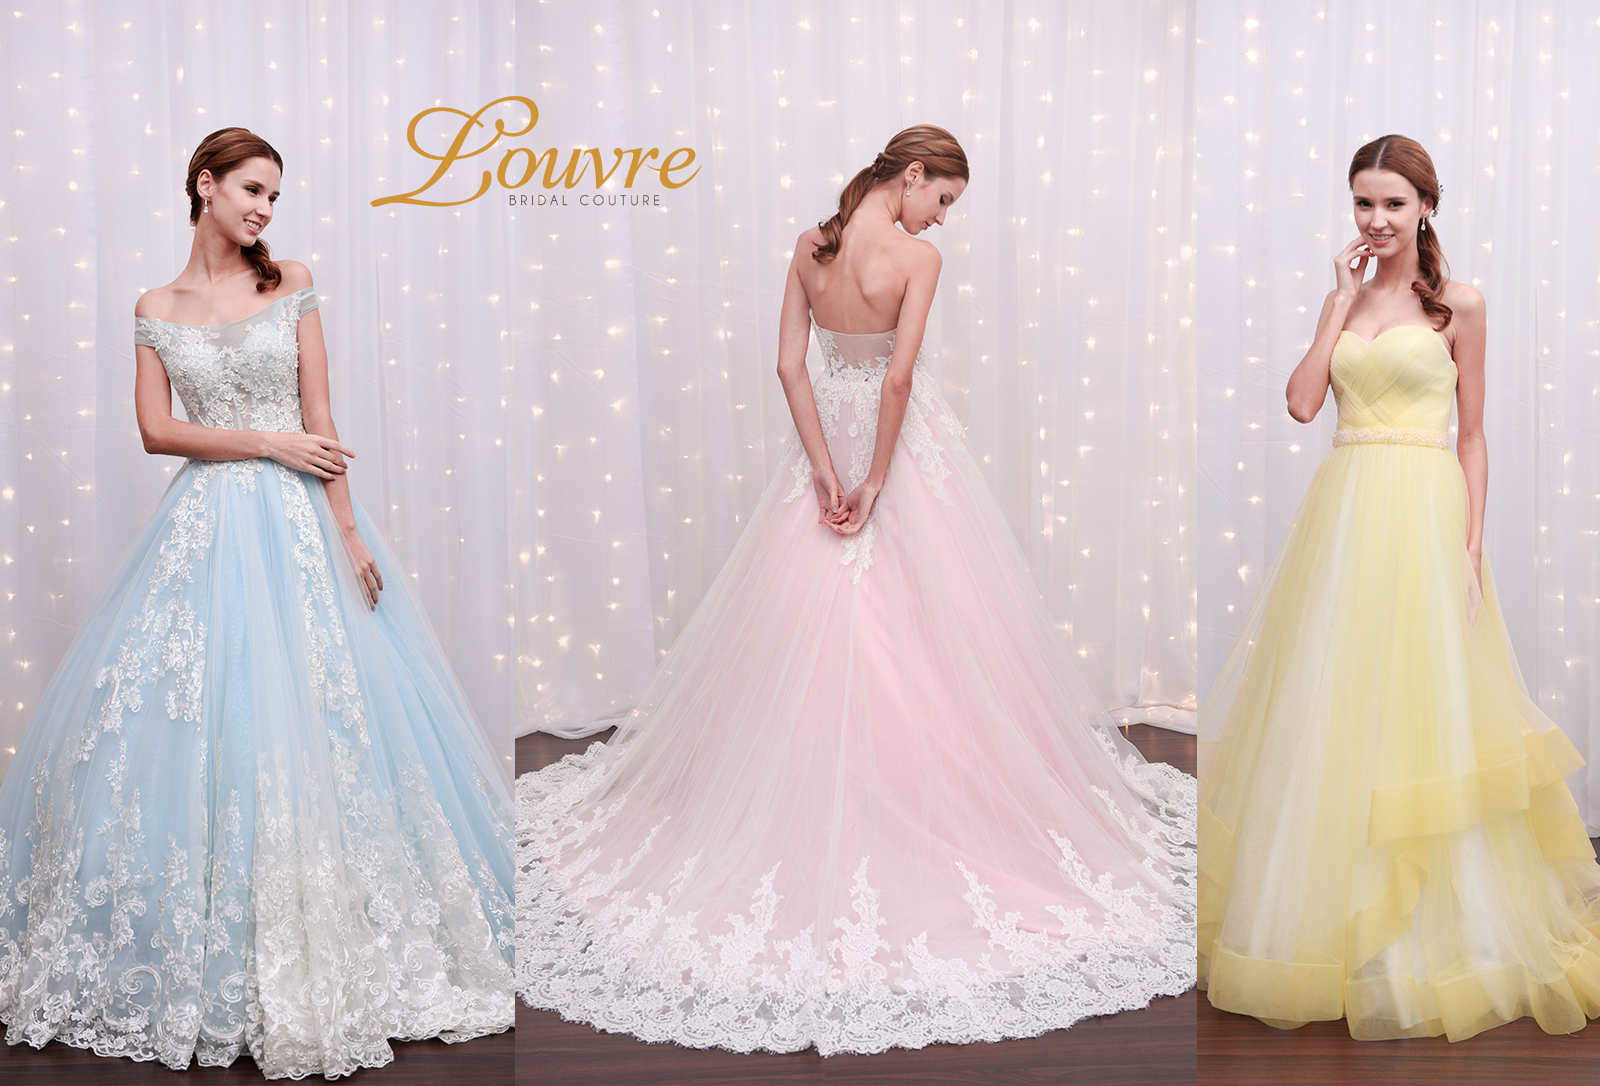 Bridal Gown: Disney Princess Inspired Gowns for Rent in Singapore